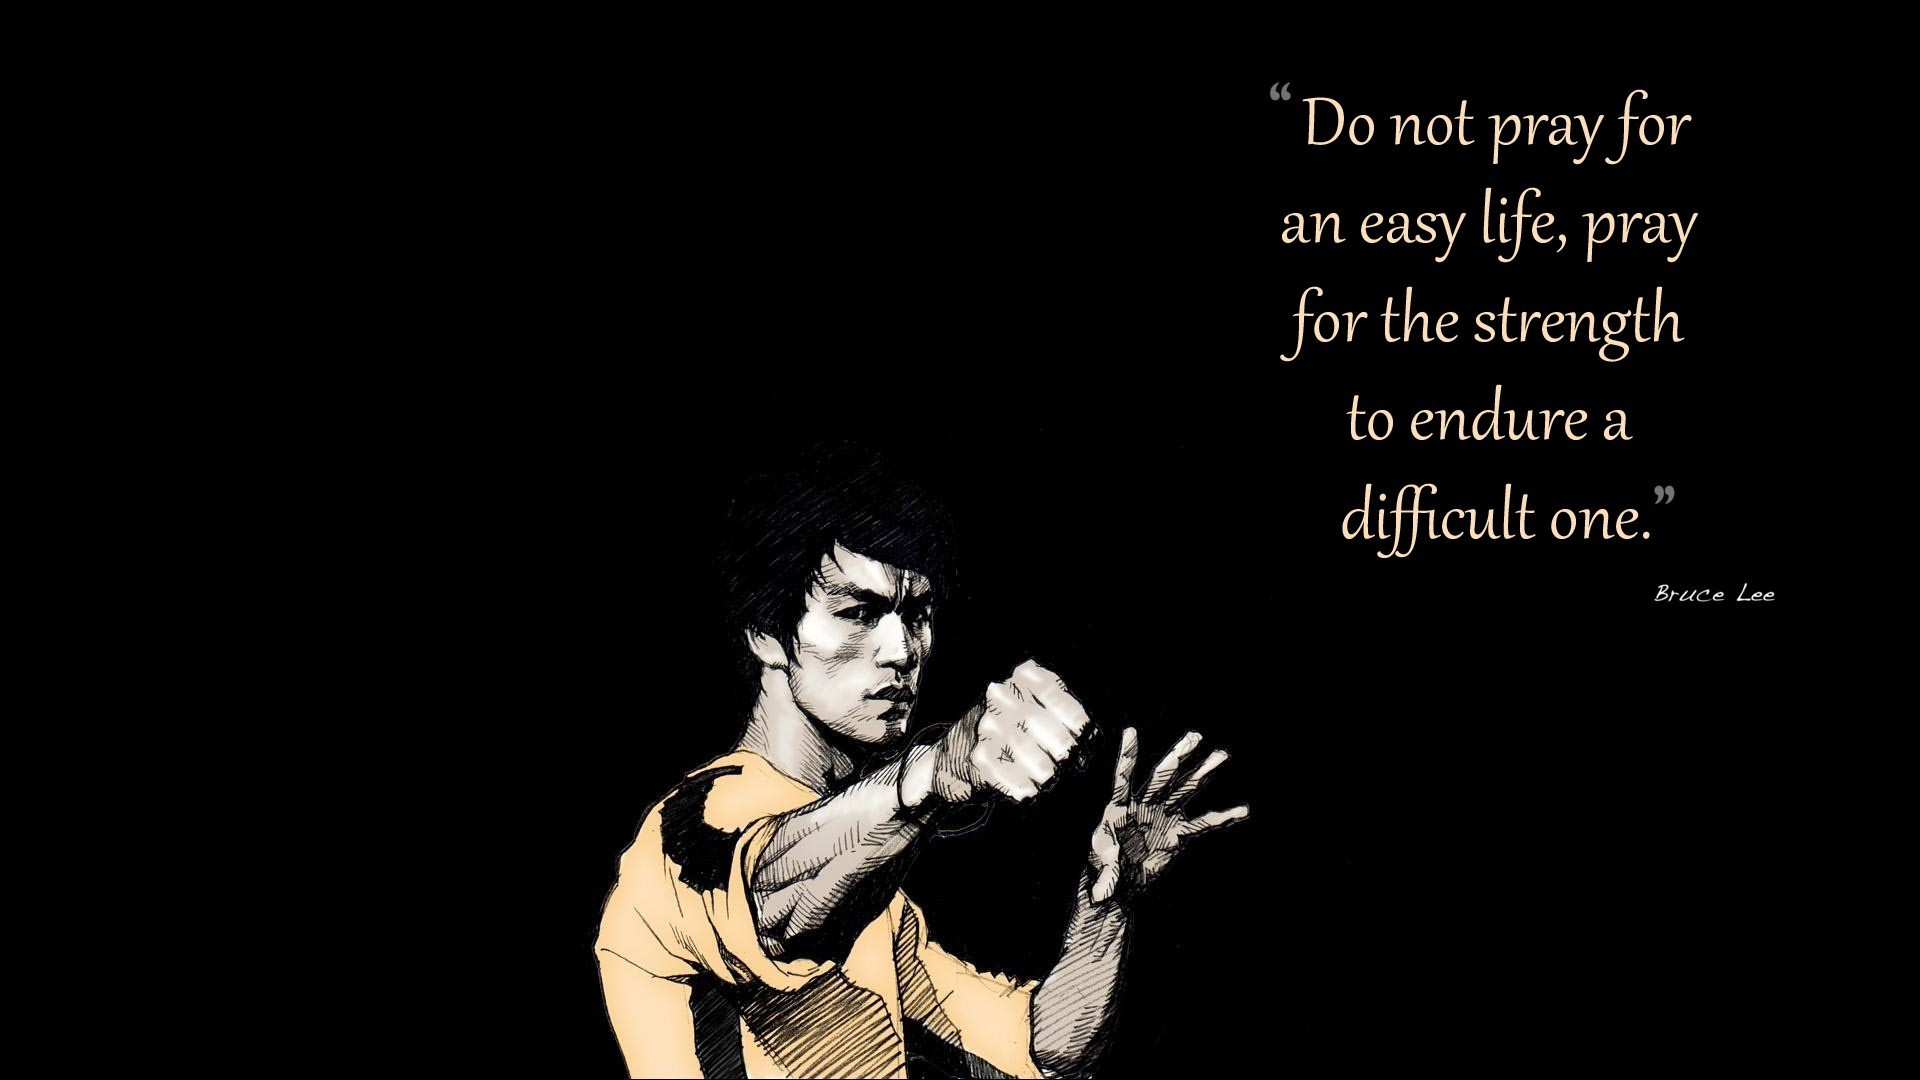 Bruce Lee Artwork Black Background Quotes Wallpaper Allwallpaper